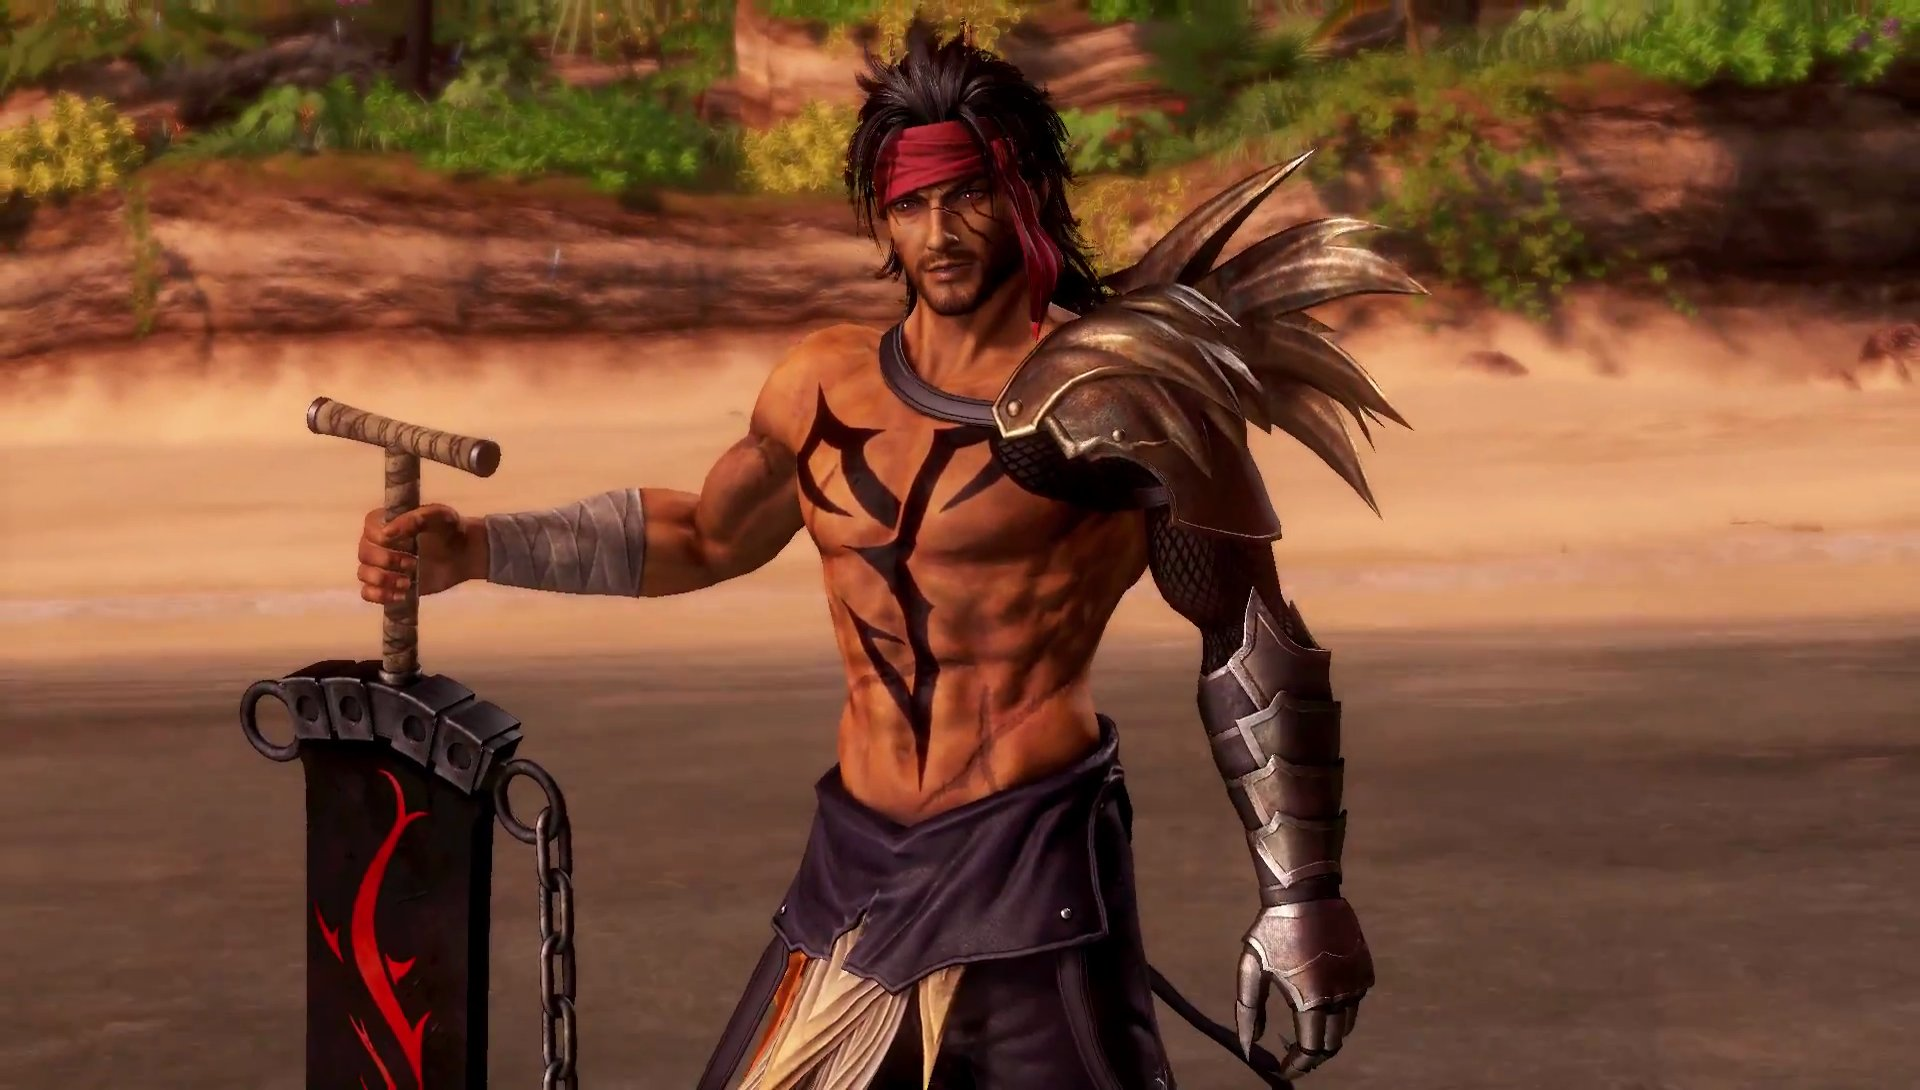 Jecht beats his son in his Dissidia NT reveal trailer screenshot